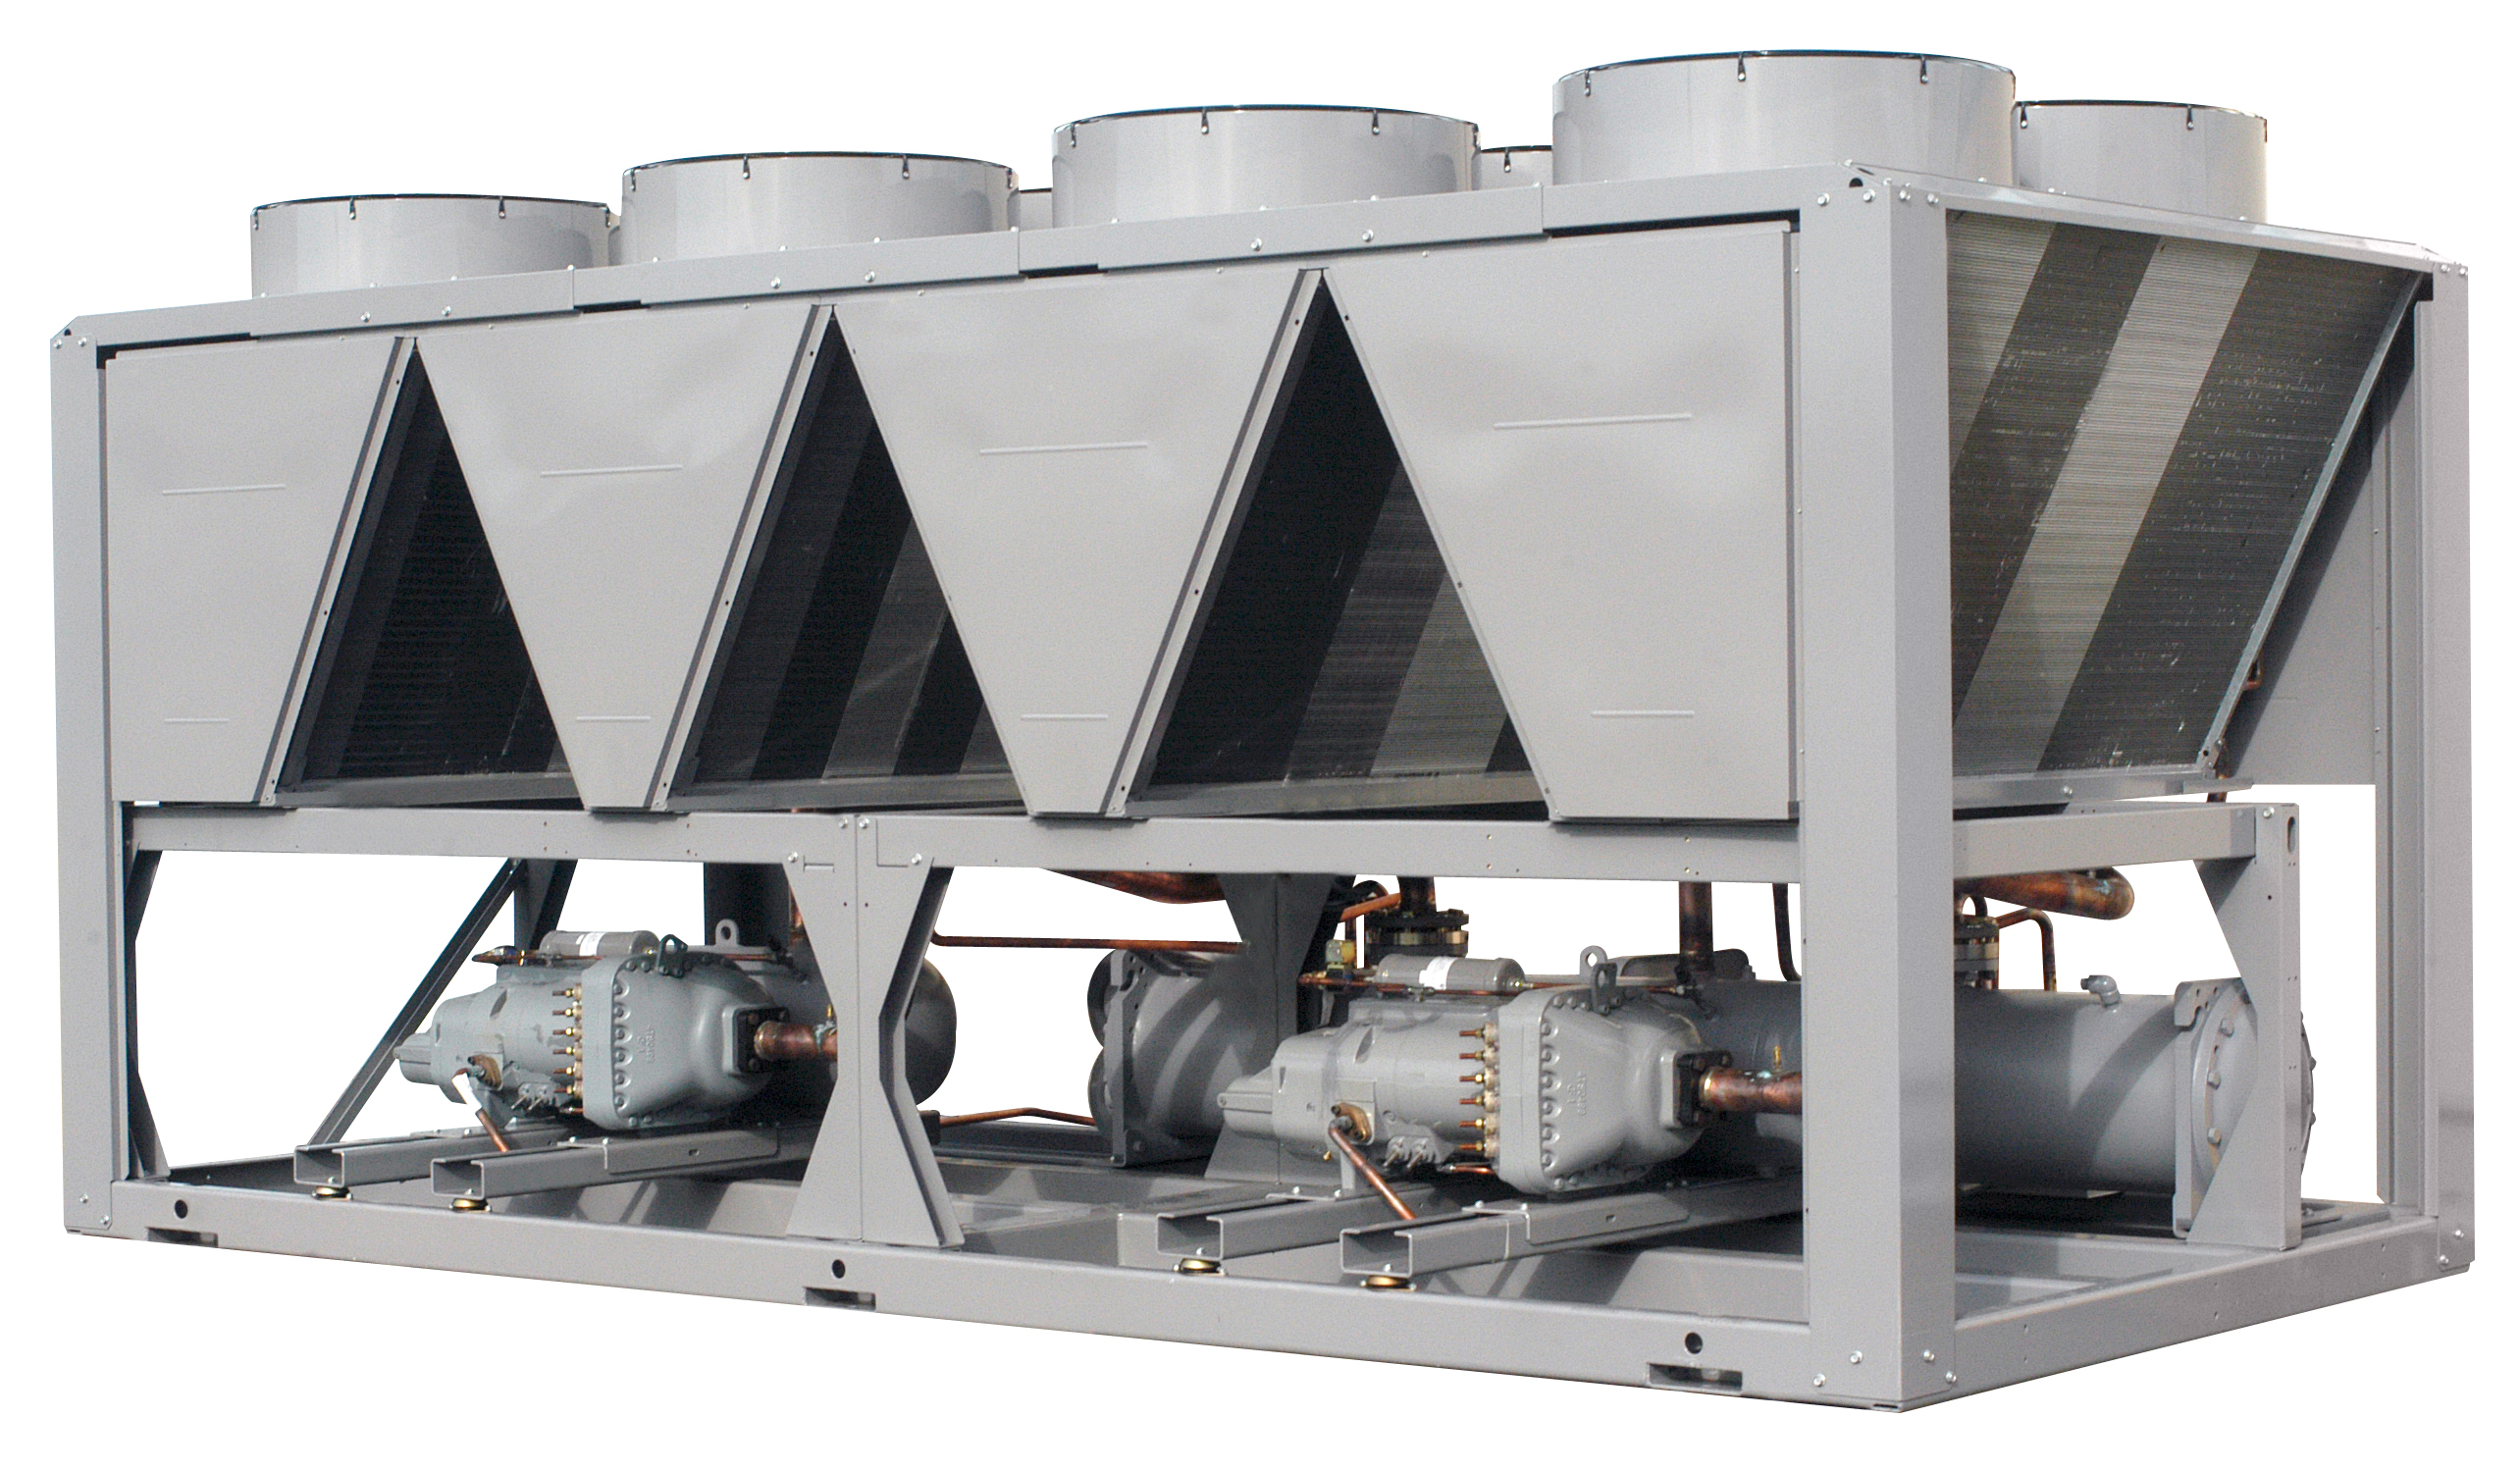 Absorption Chiller Shahnawaz Engineering #5E4C44